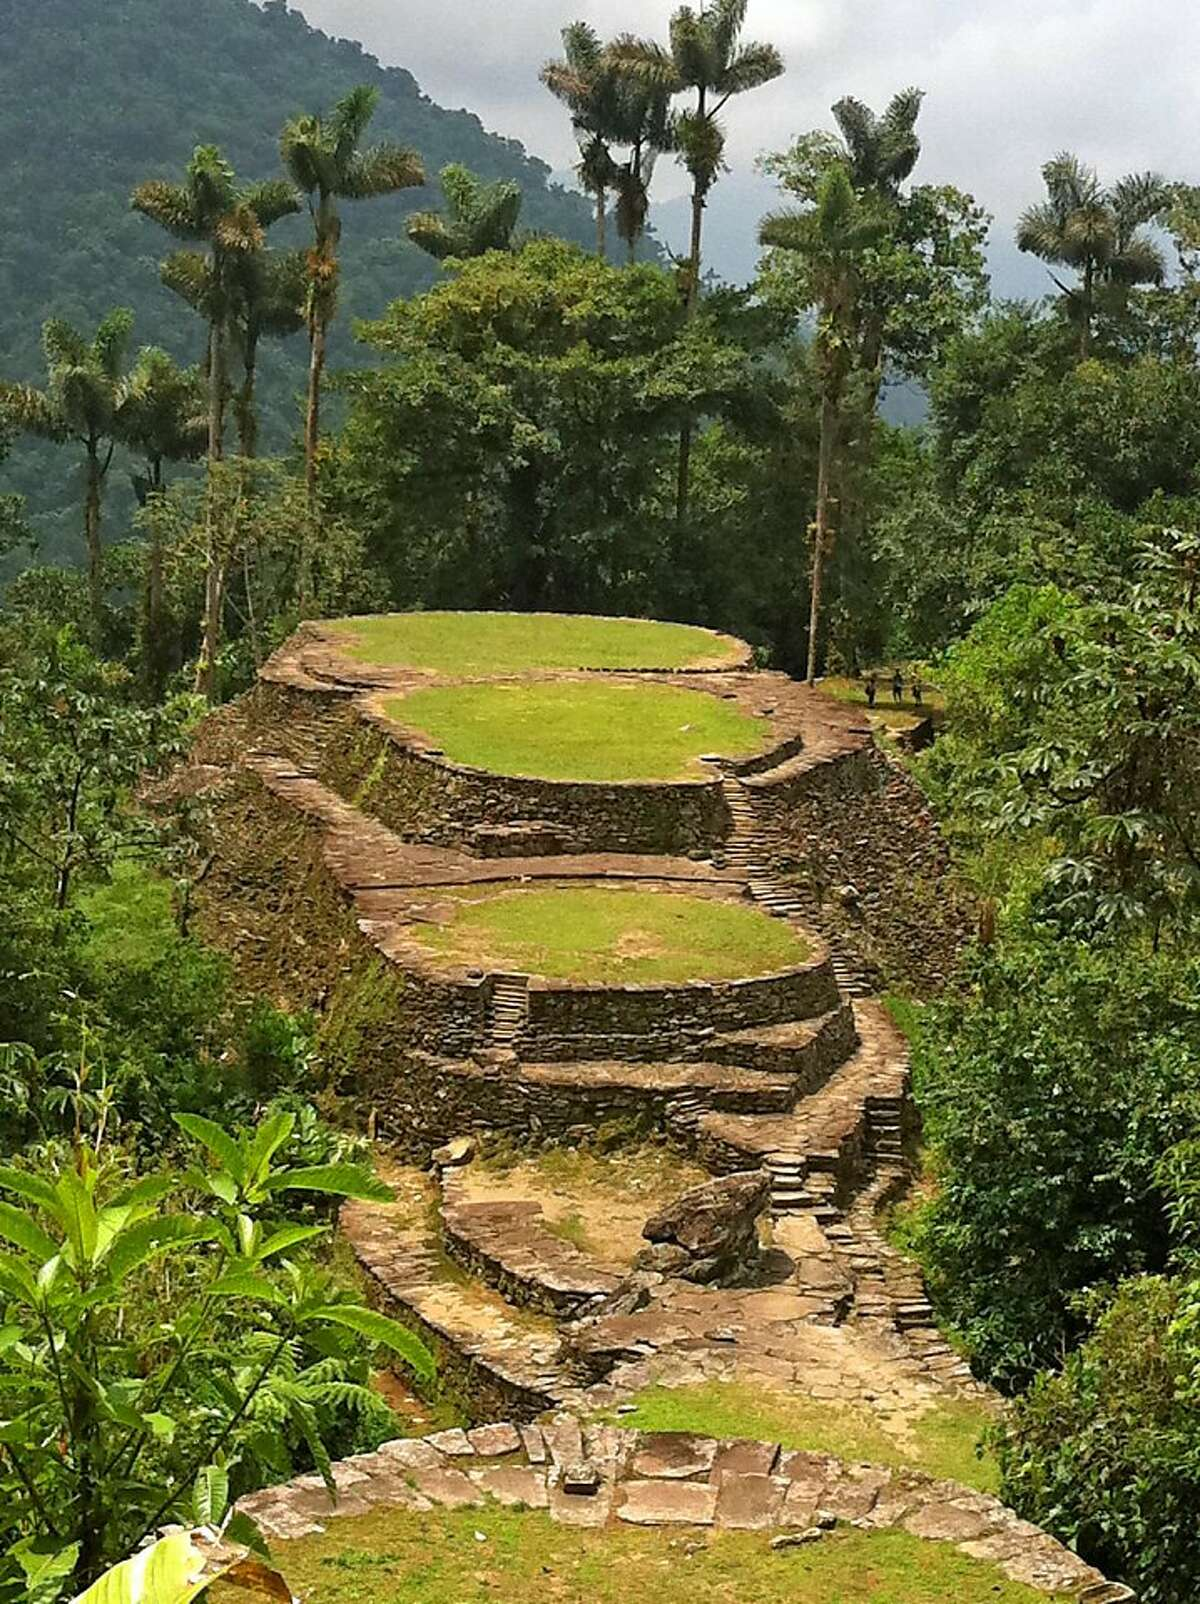 The rocky terraces of Ciudad Perdida rise from mountaintop jungles.